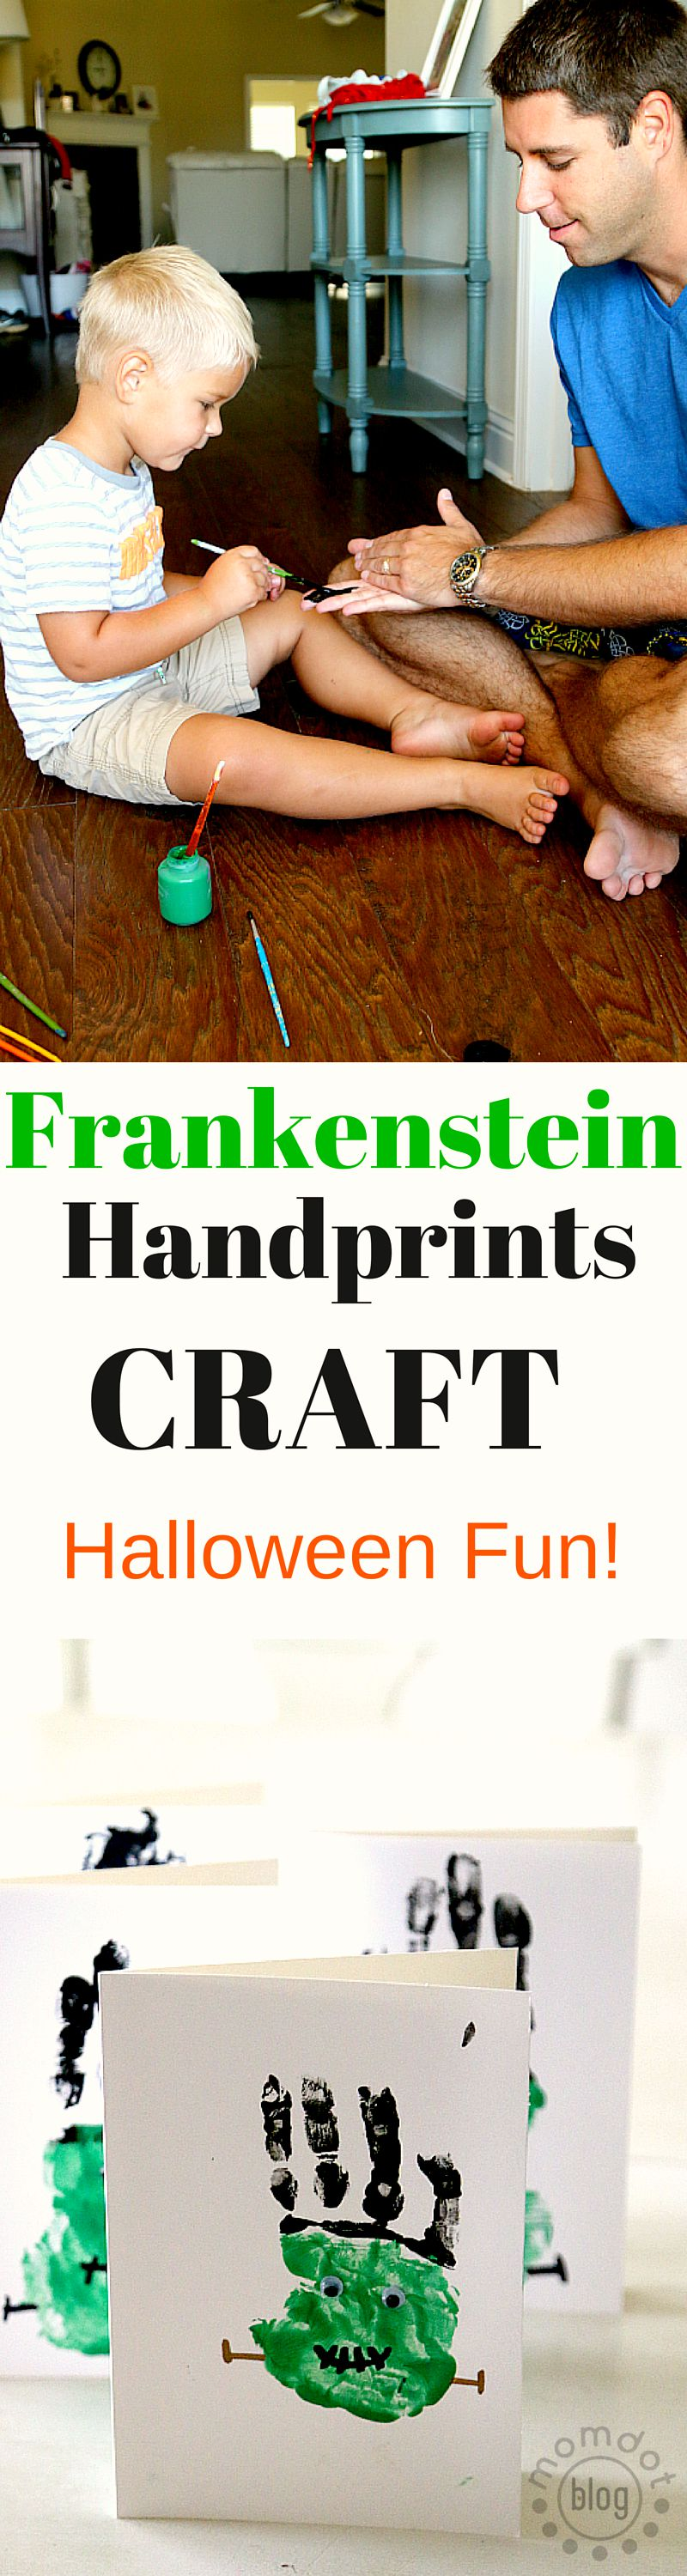 Frankenstein Handprints Craft: Toddler friendly halloween fun DIY for the whole family, Create your Frankenstein handprints as finger painting or get creative and use your feet!